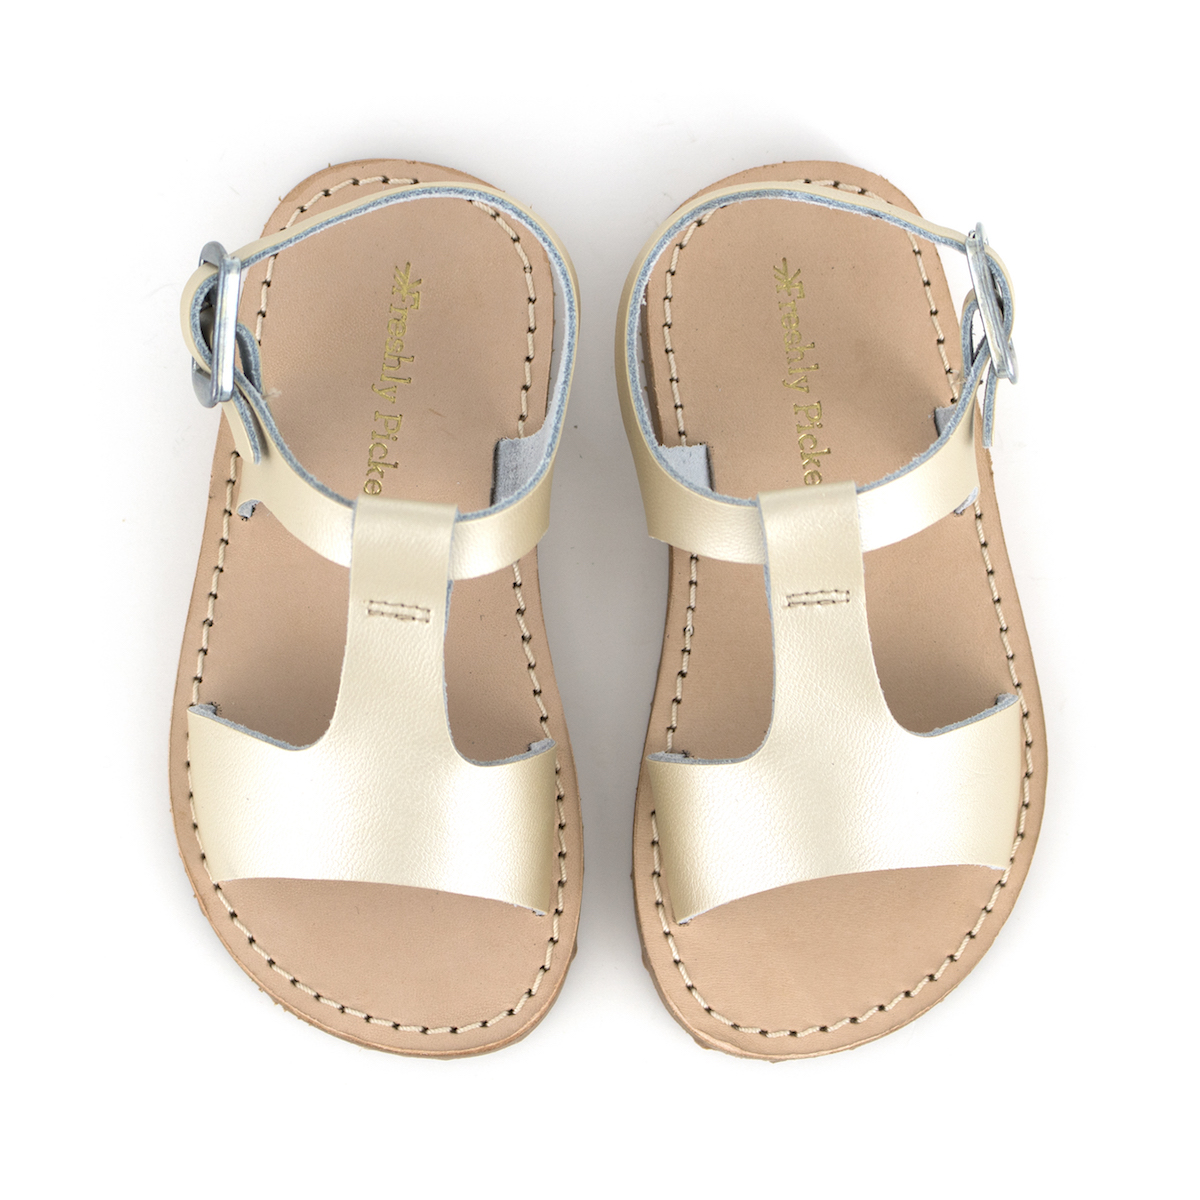 cb60fc430 But now they are introducing sandals. The perfect summer fashion accessory  for both boys and girls